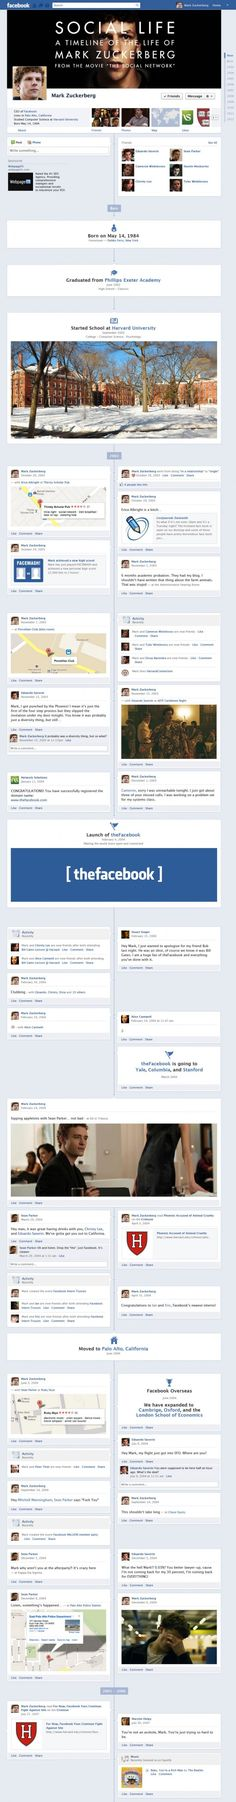 Facebook #Infographic